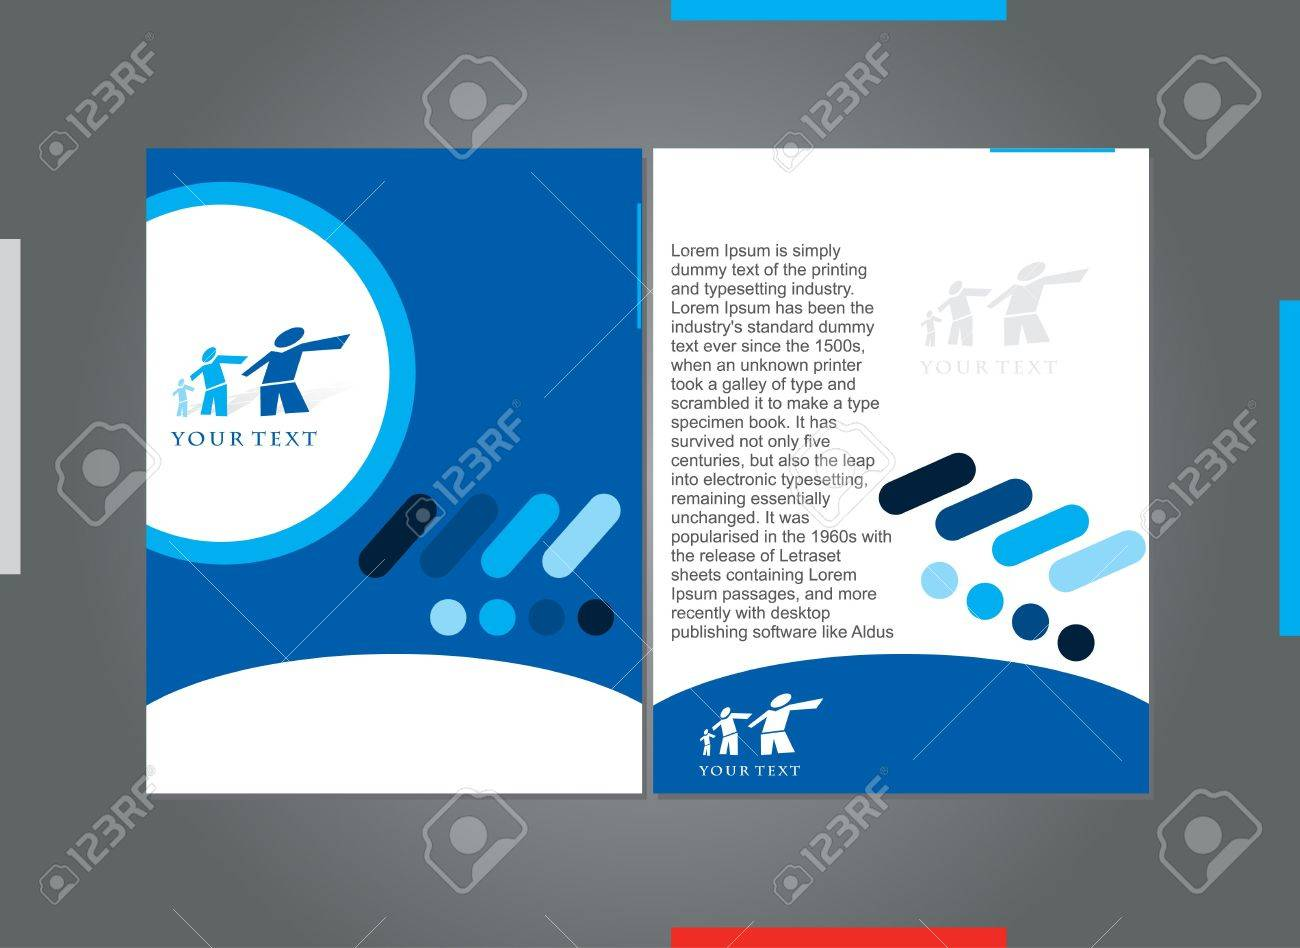 business style templates this type more templates please see business style templates this type more templates please see my profile stock vector 6824883